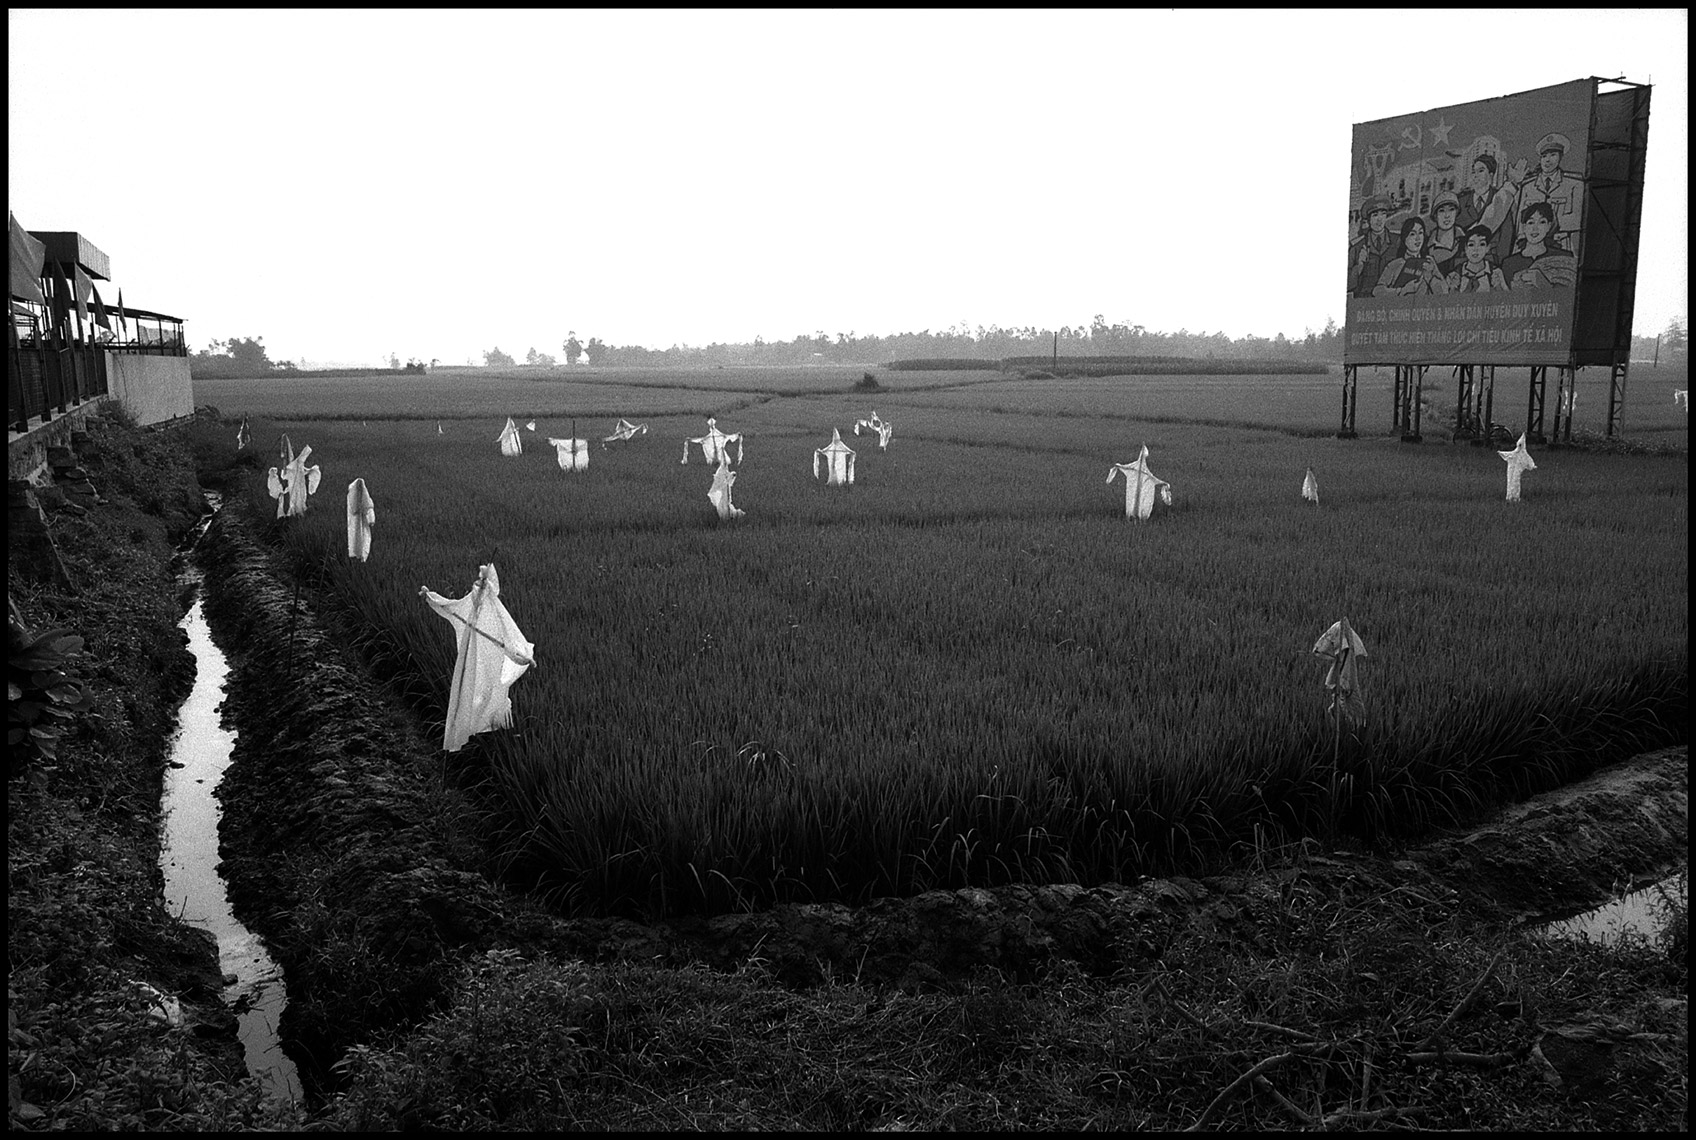 Rice Paddies and Scarecrows